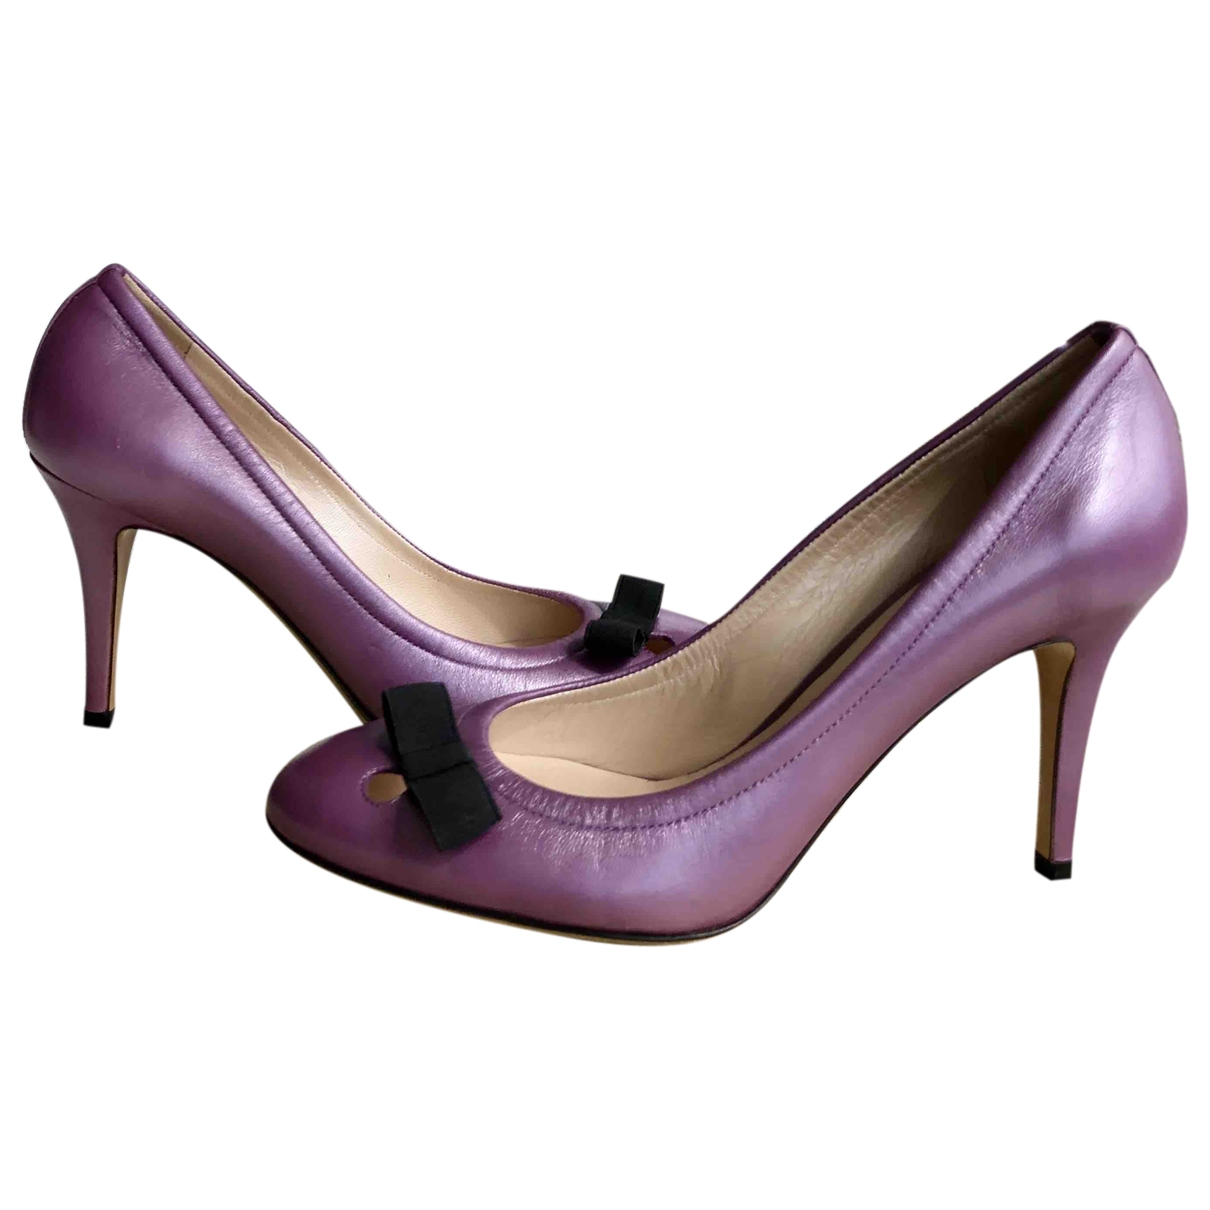 Casadei \N Purple Leather Heels for Women 36 EU